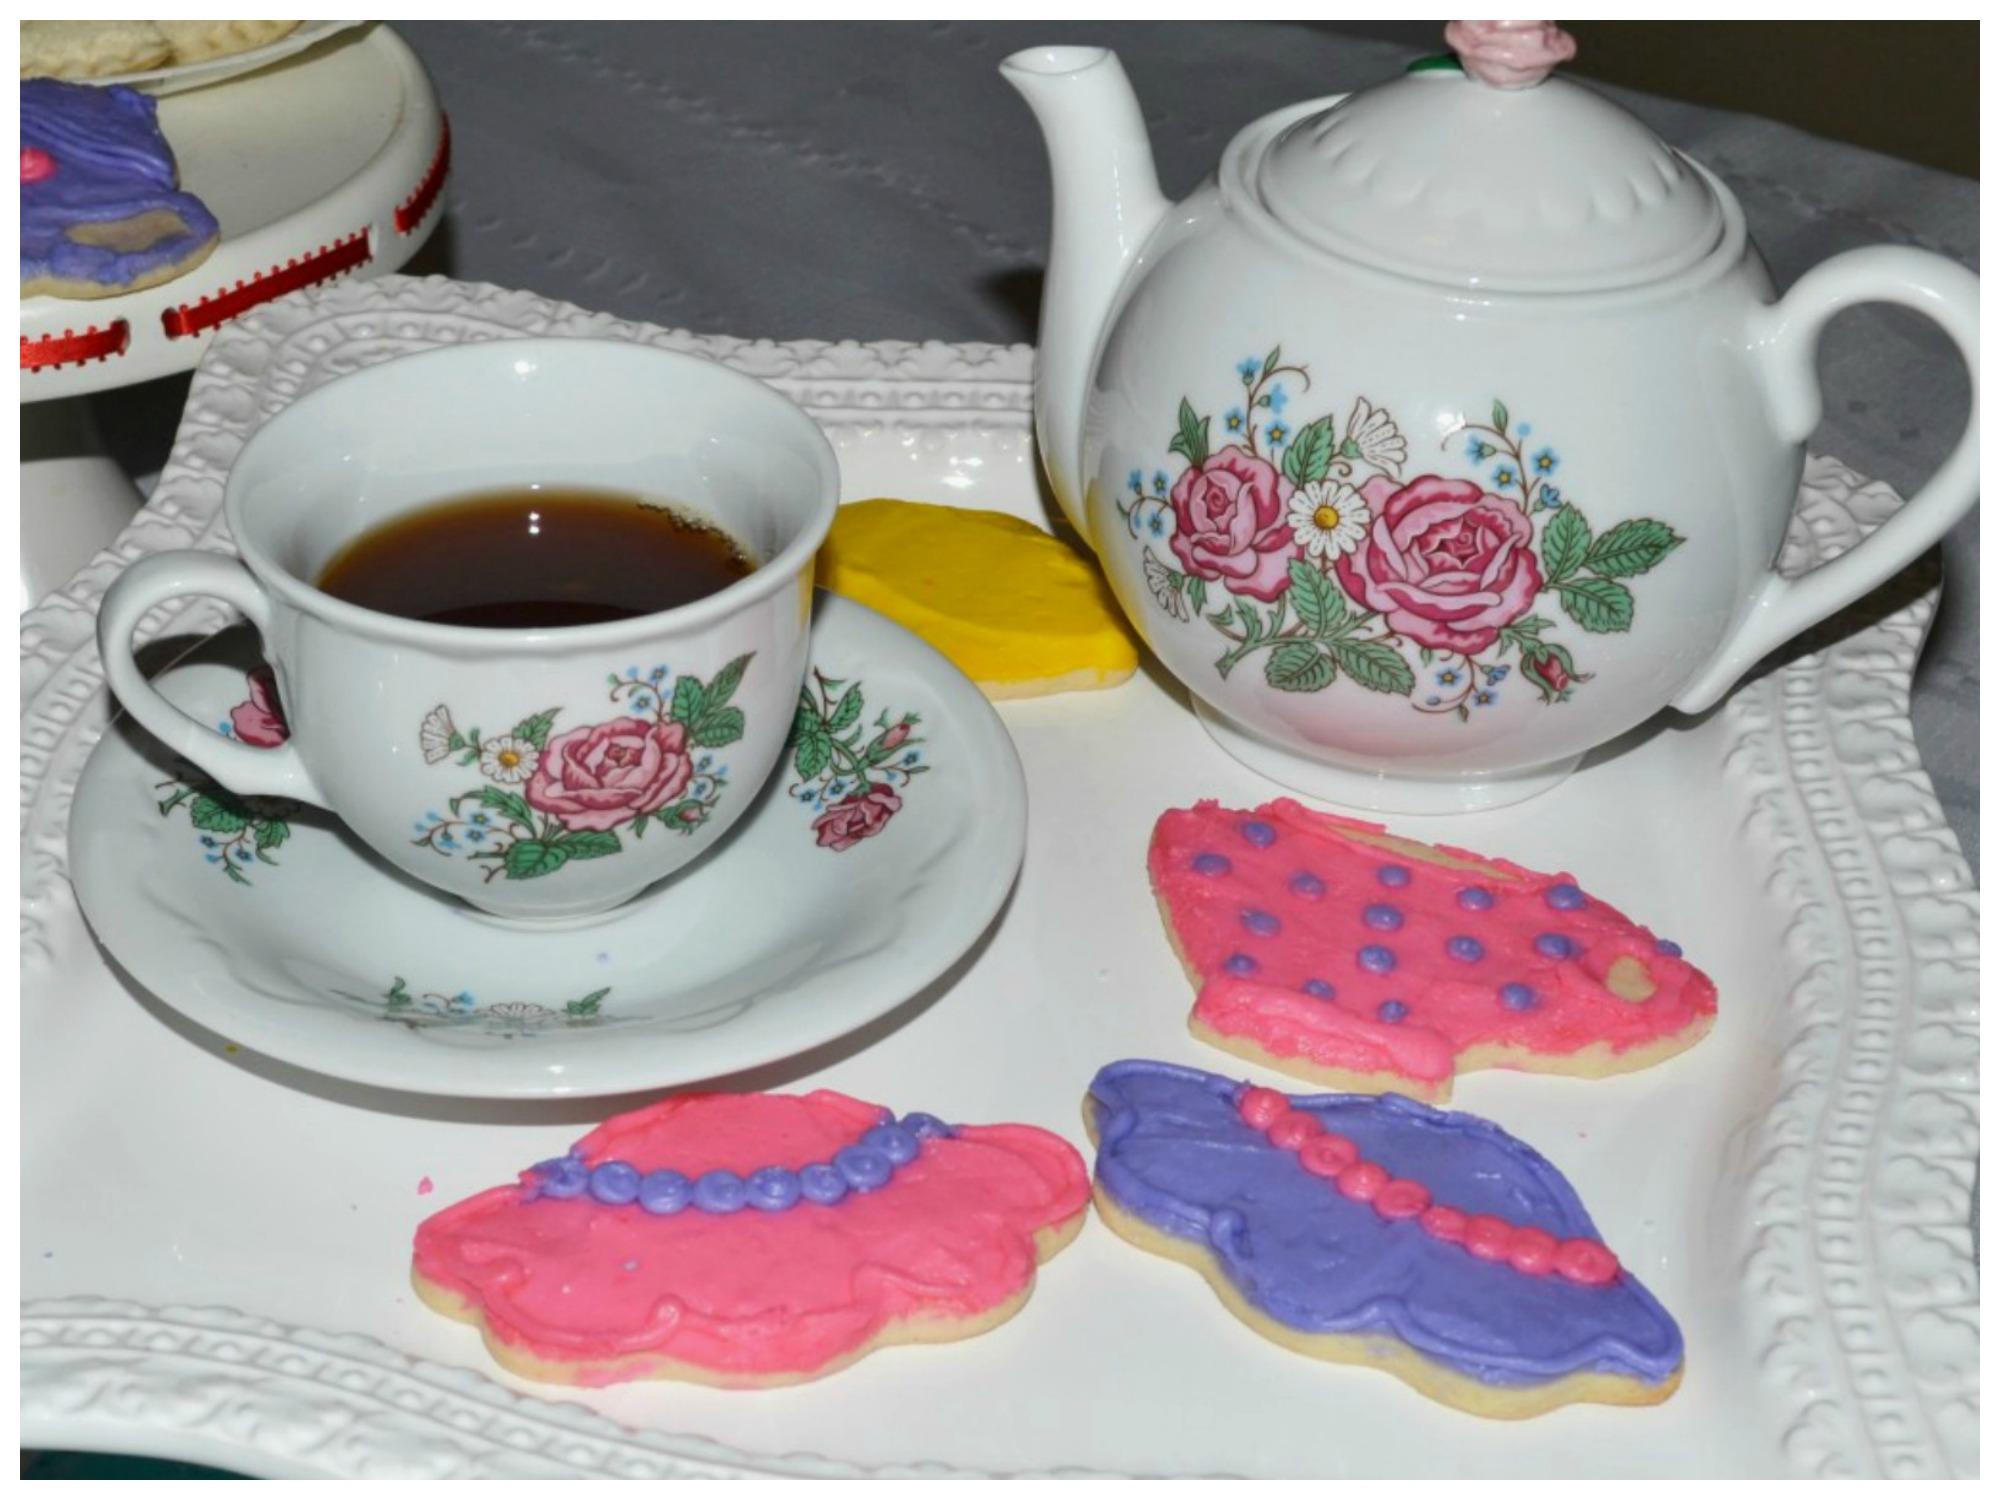 Ideas for an afternoon tea party for Mother's Day with tea and little snacks